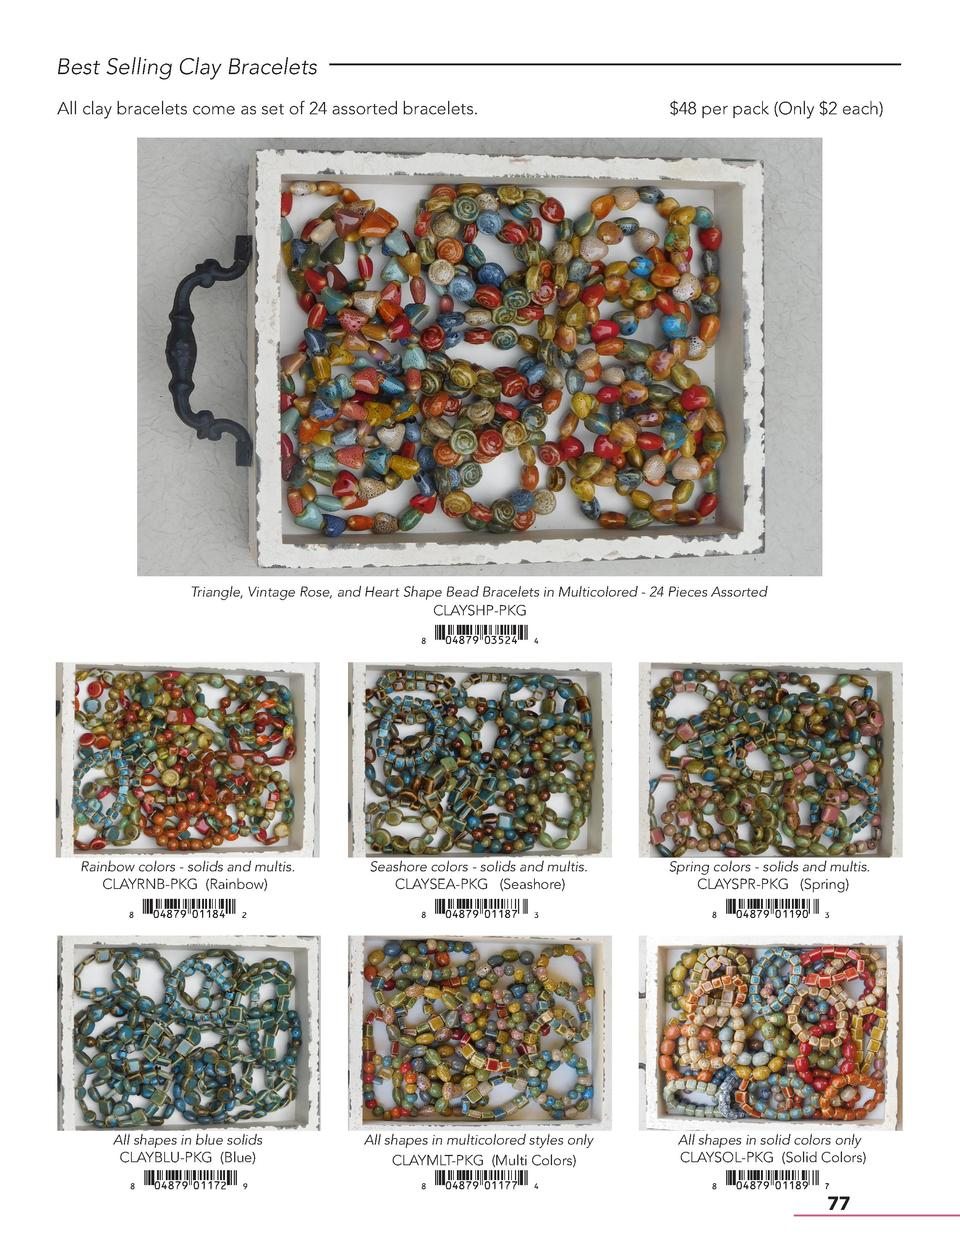 Best Selling Clay Bracelets All clay bracelets come as set of 24 assorted bracelets.   48 per pack  Only  2 each   Triangl...